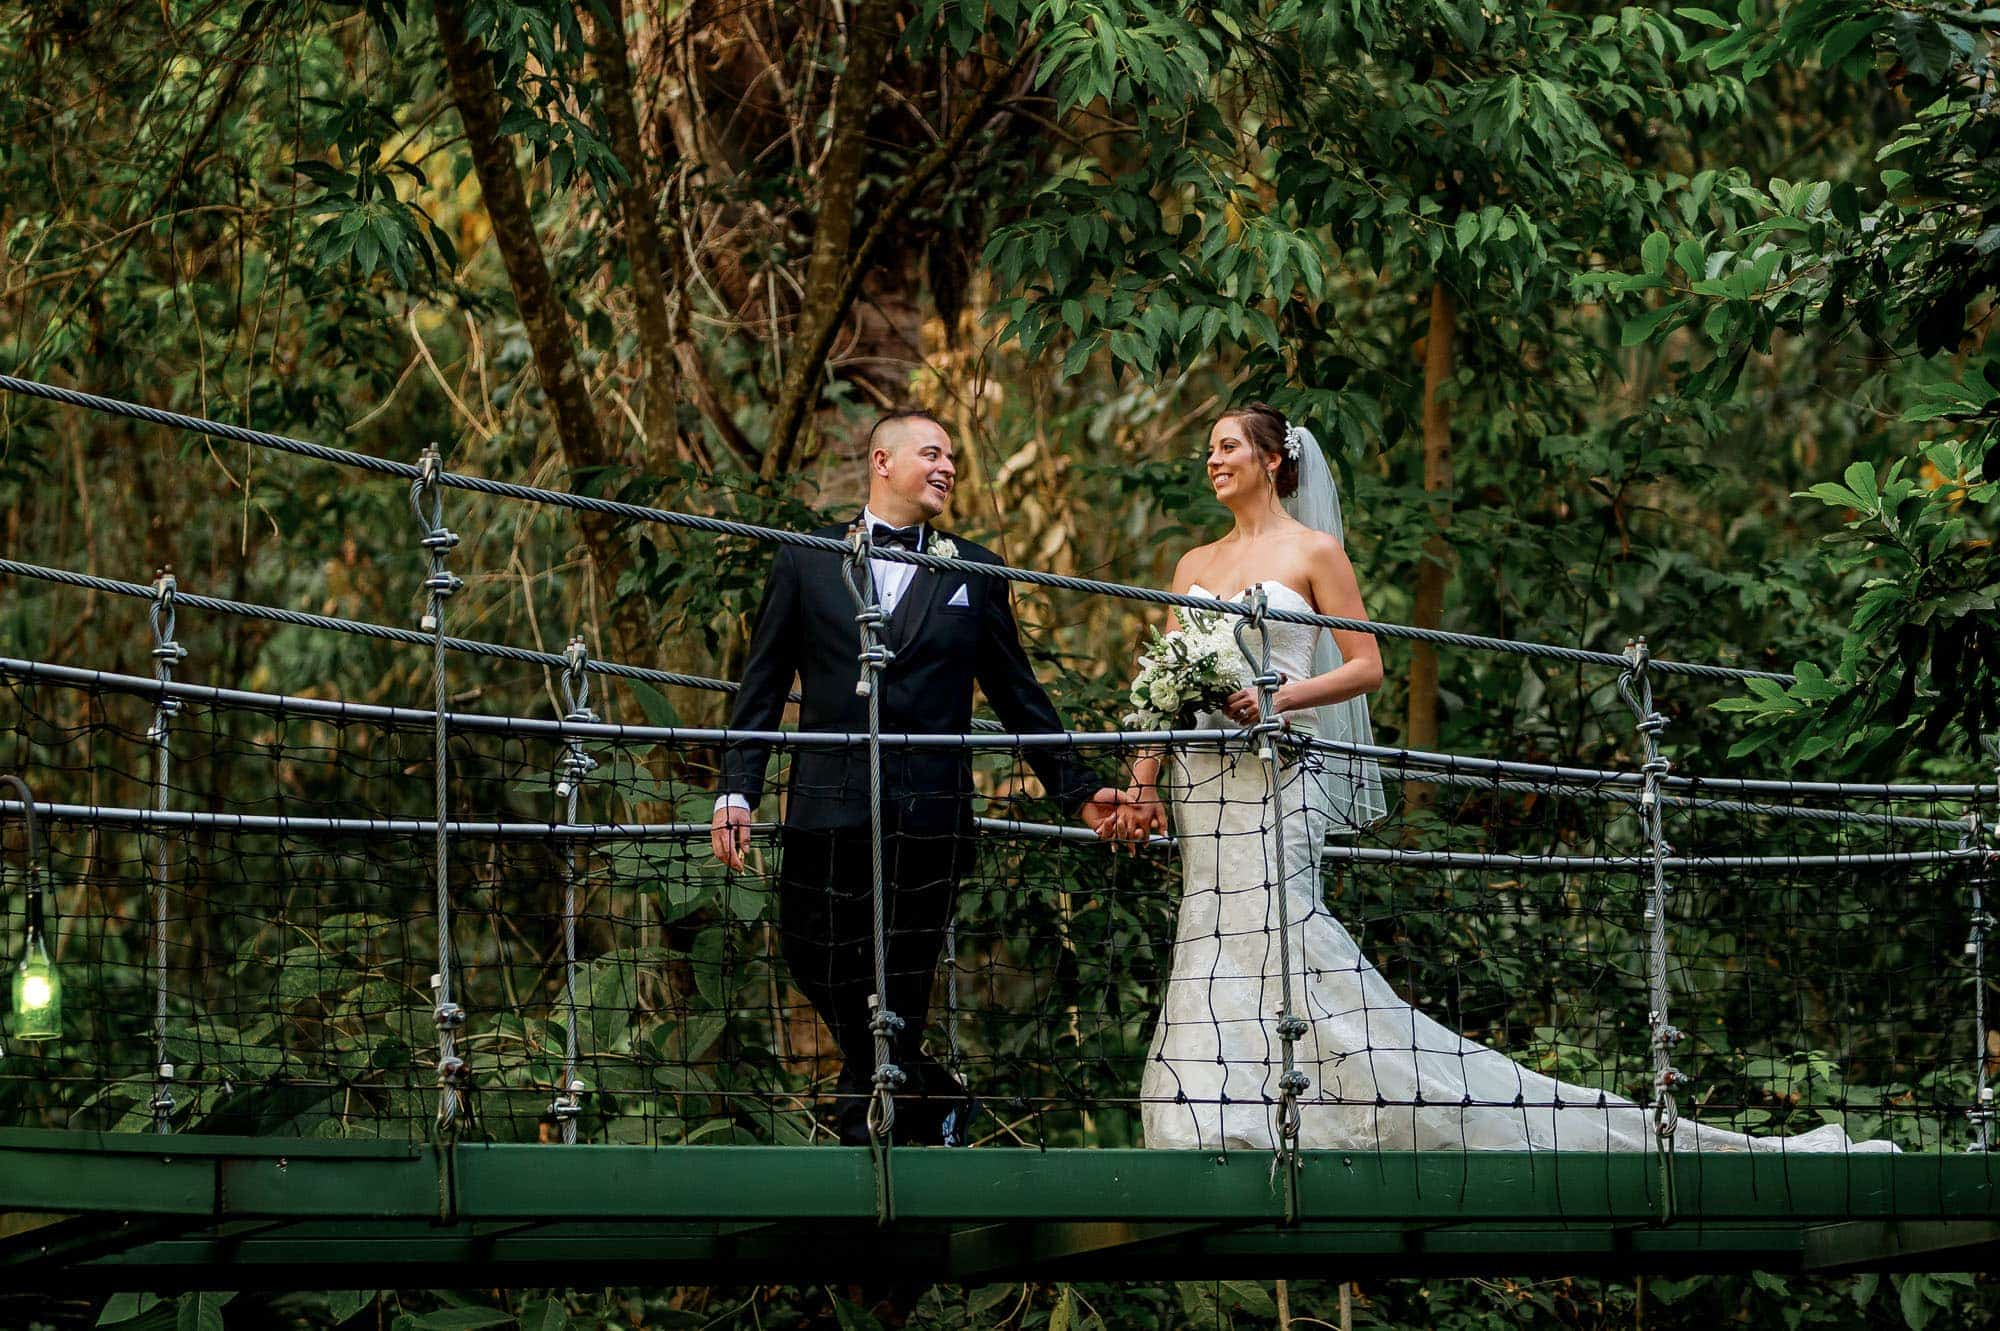 The bride and groom on the hanging bridge at Costa Verde